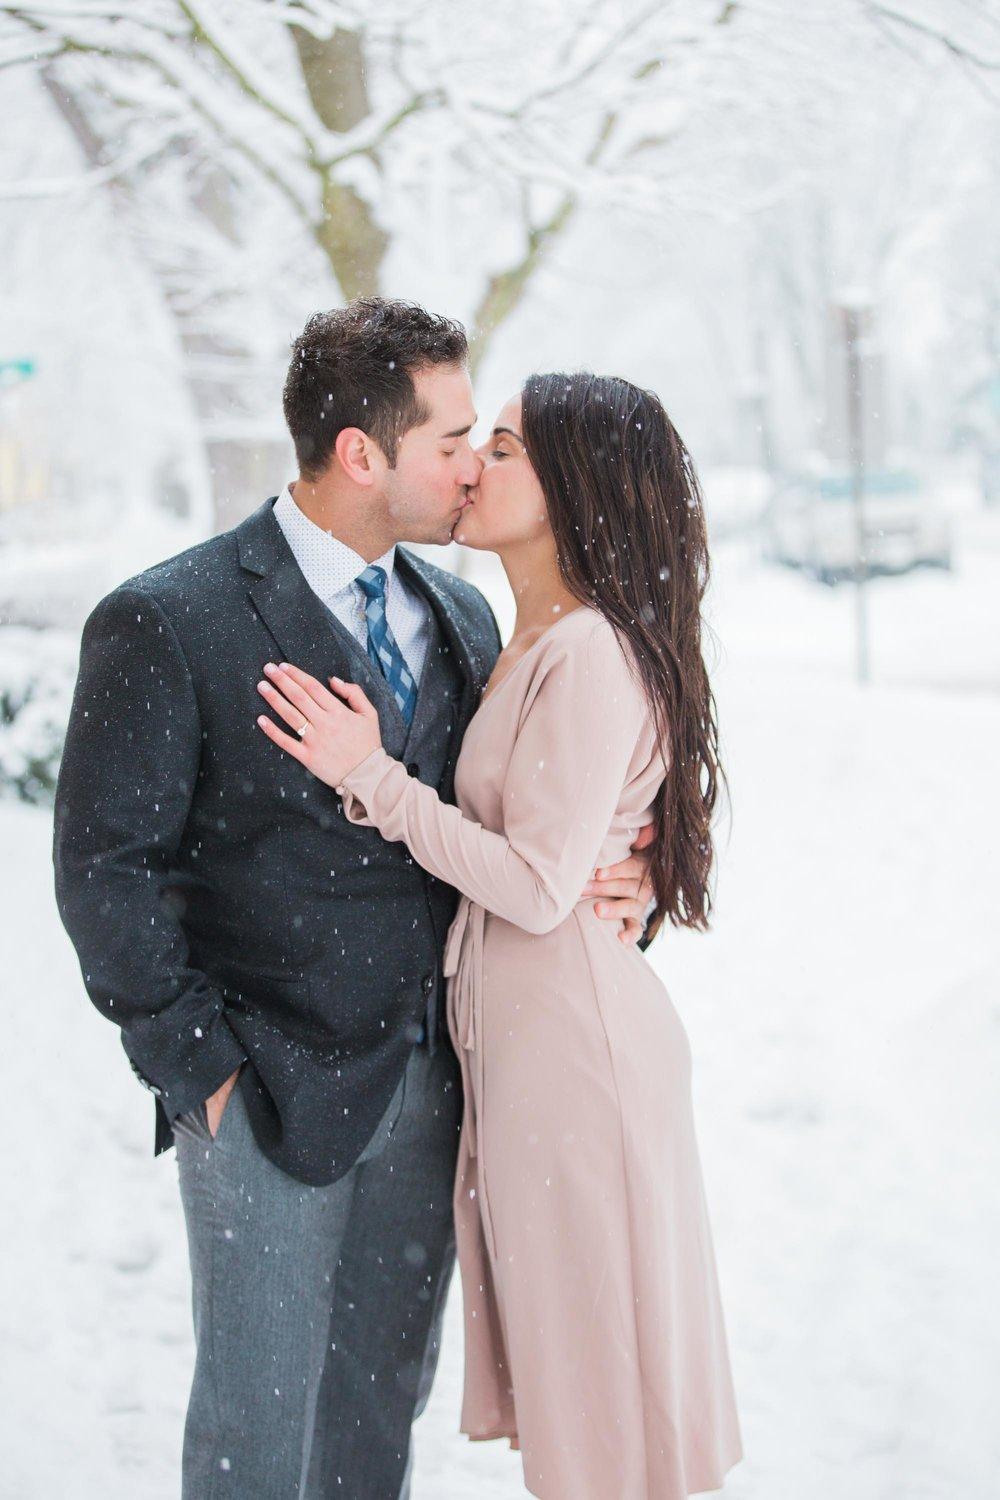 nataschia_wielink_photography_niagara_on_the_lake_engagement_session_vanessa_matt 0010 .JPG